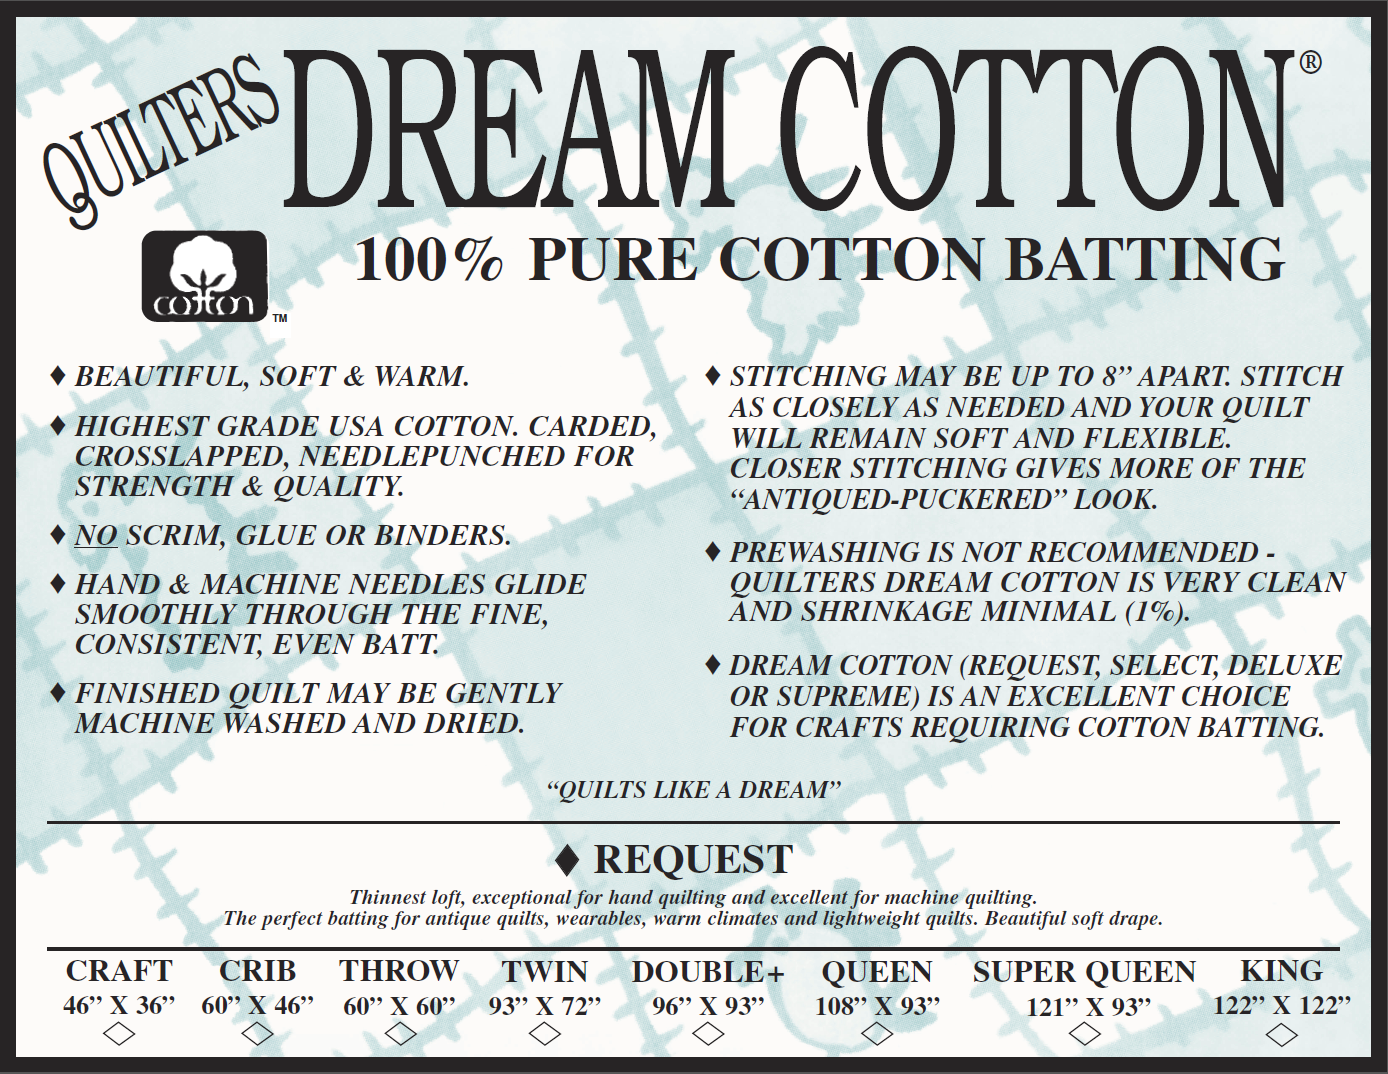 QUEEN REQUEST Quilters Dream Cotton White